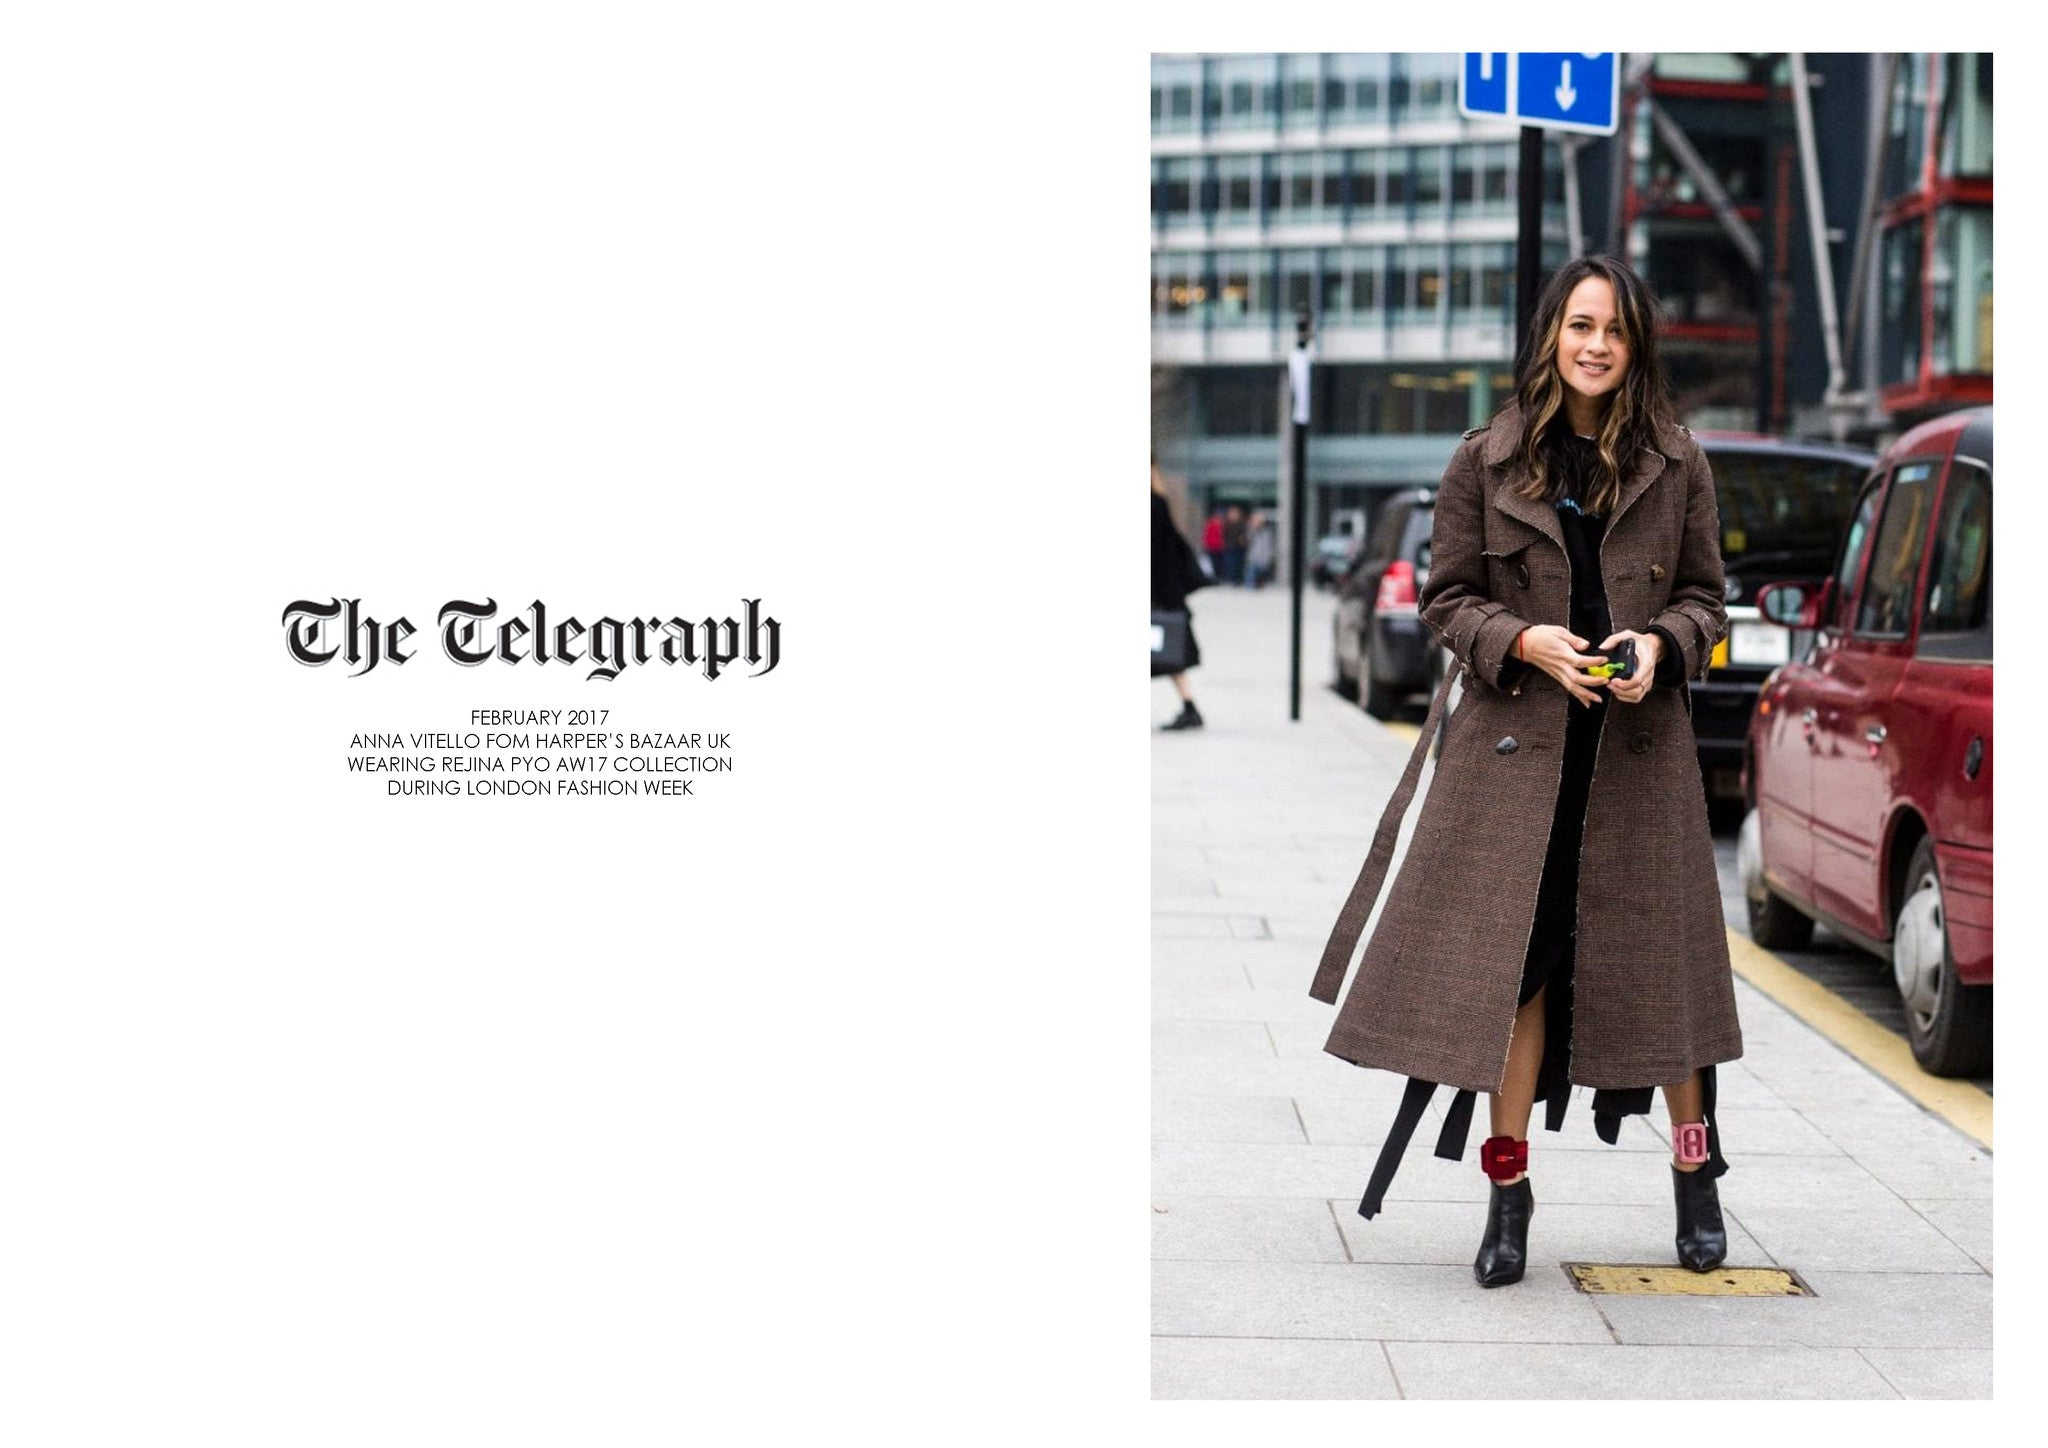 THE TELEGRAPH ONLINE: FEATURING REJINA PYO AW17 COLLECTION DURING LFW